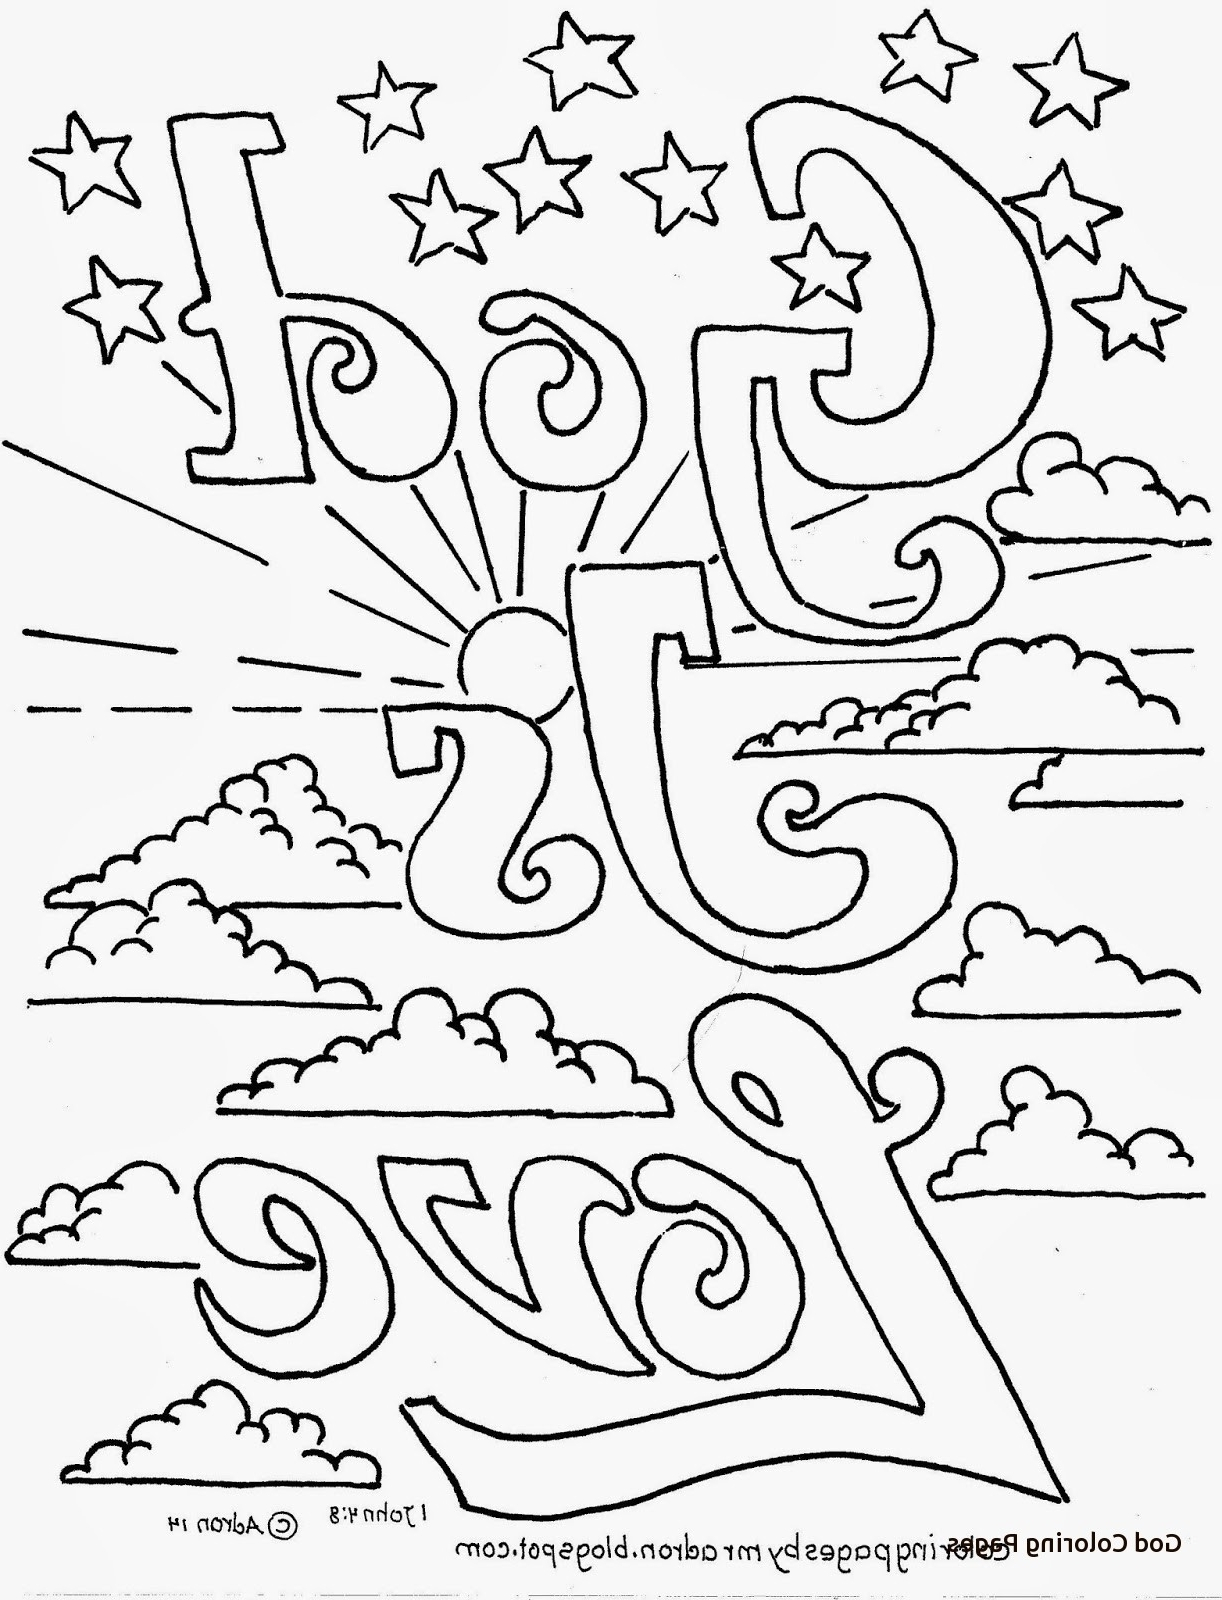 coloring jesus loves me religious coloring pages sheets coloring pages part 2 me coloring jesus loves